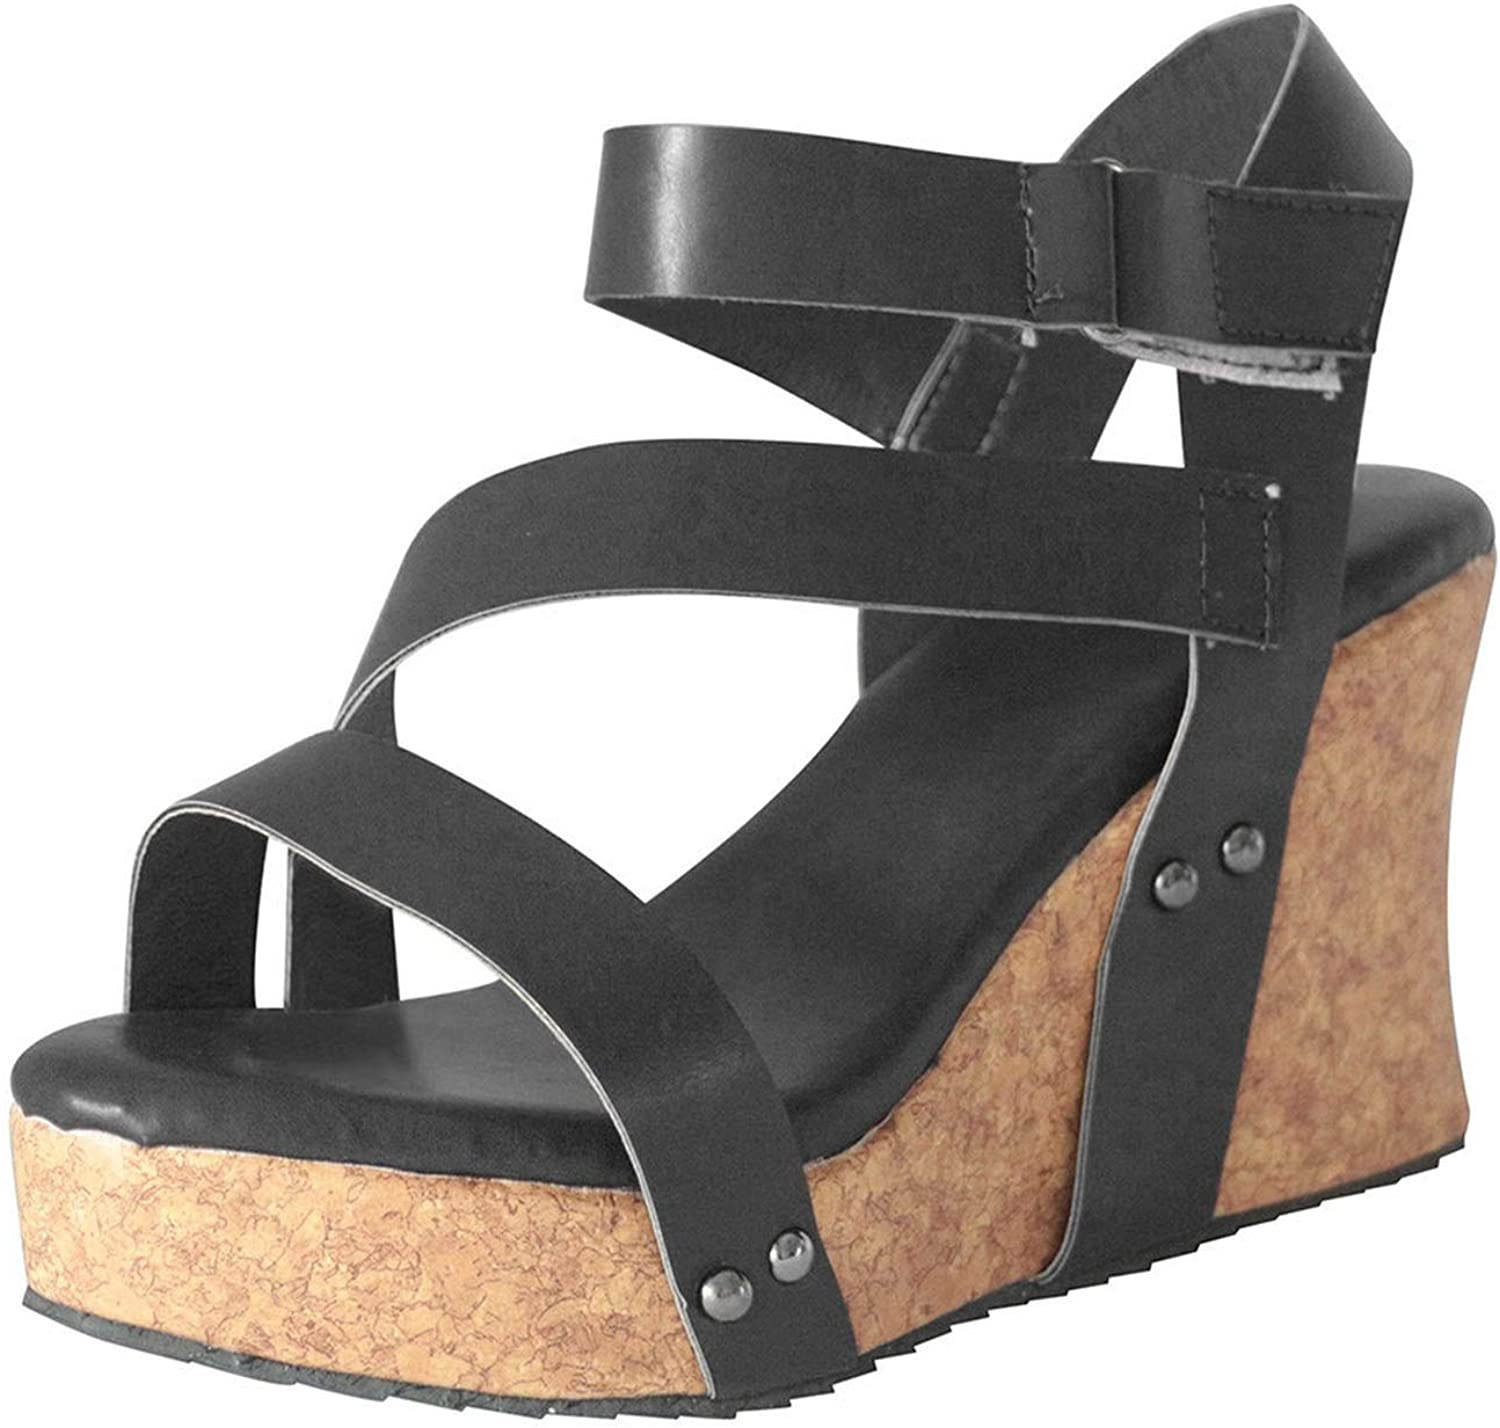 Wedges Platform Sandals Women Retro Open Toe Leather latform Roman Sandals